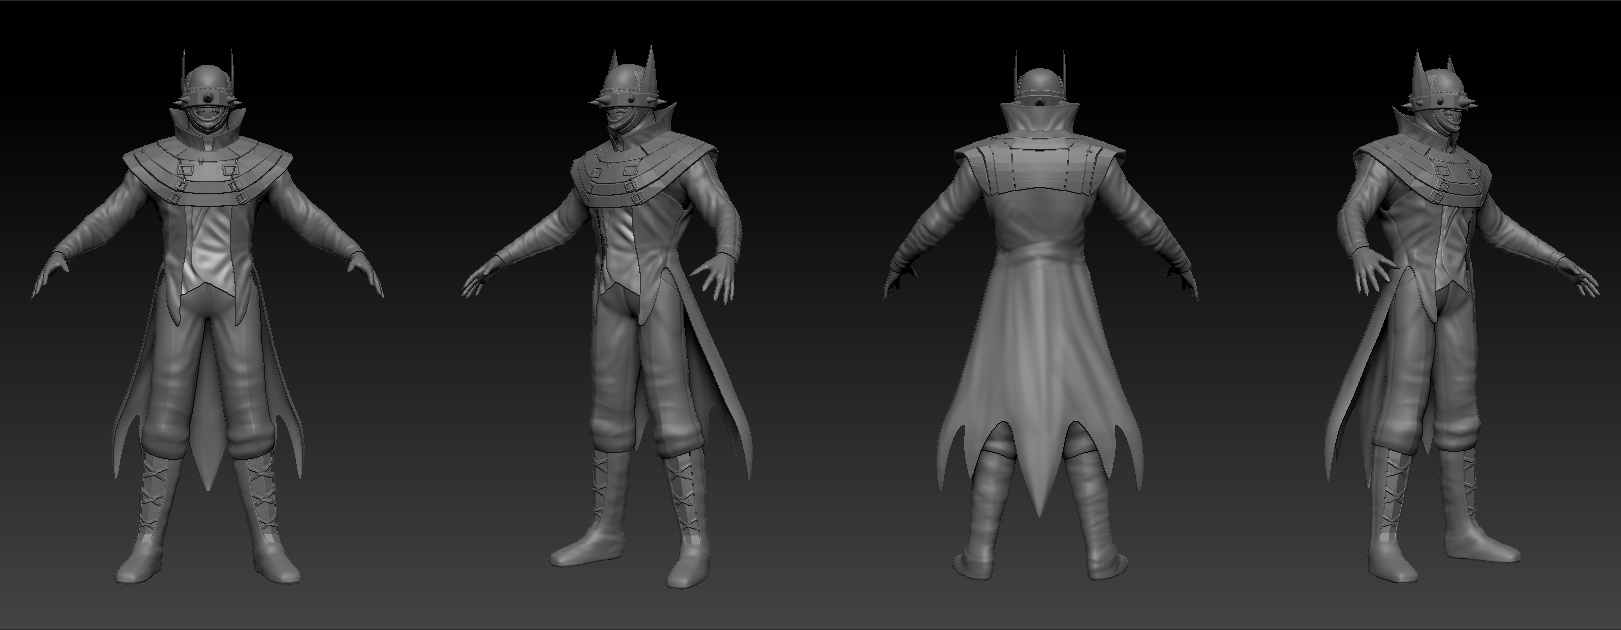 The Batman Who Laughs Finished Projects Blender Artists